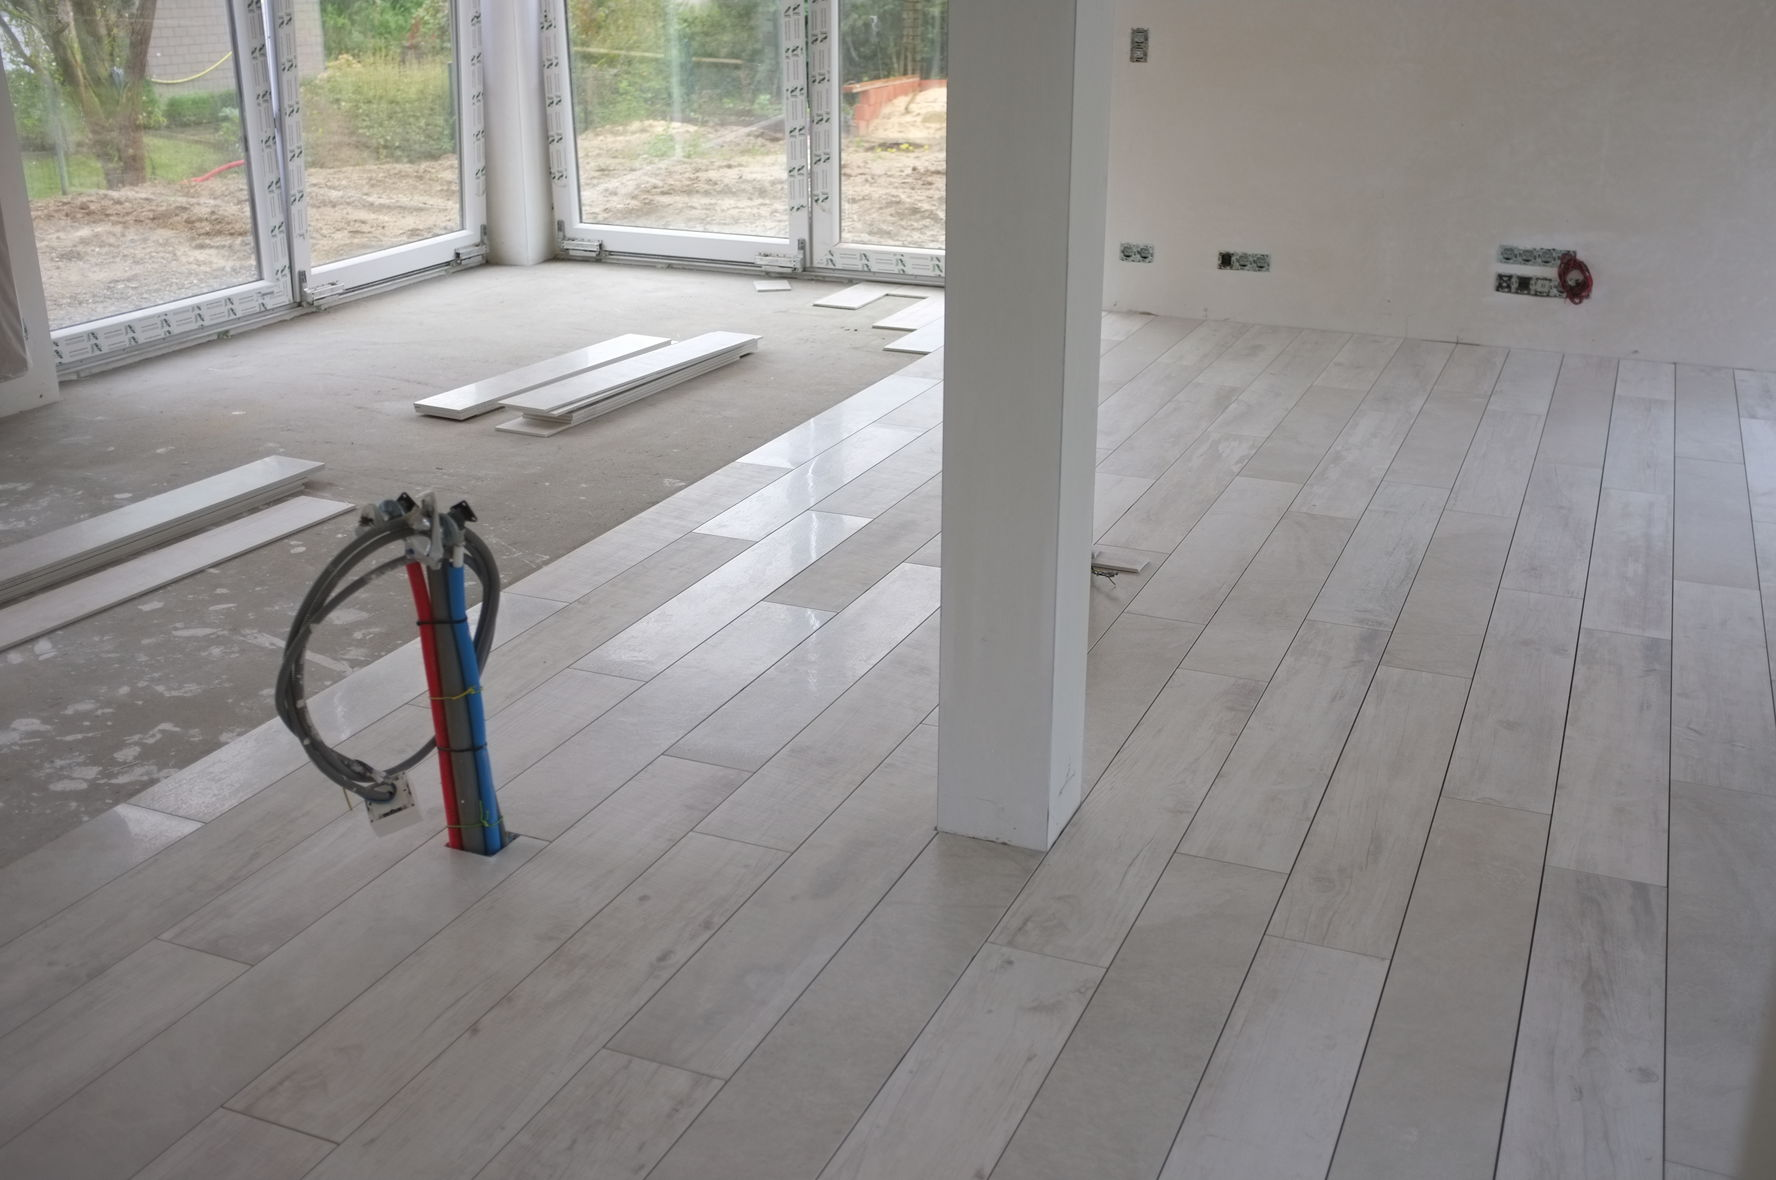 Pose du carrelage construction d 39 une maison thomas et piron - Pose carrelage imitation parquet ...